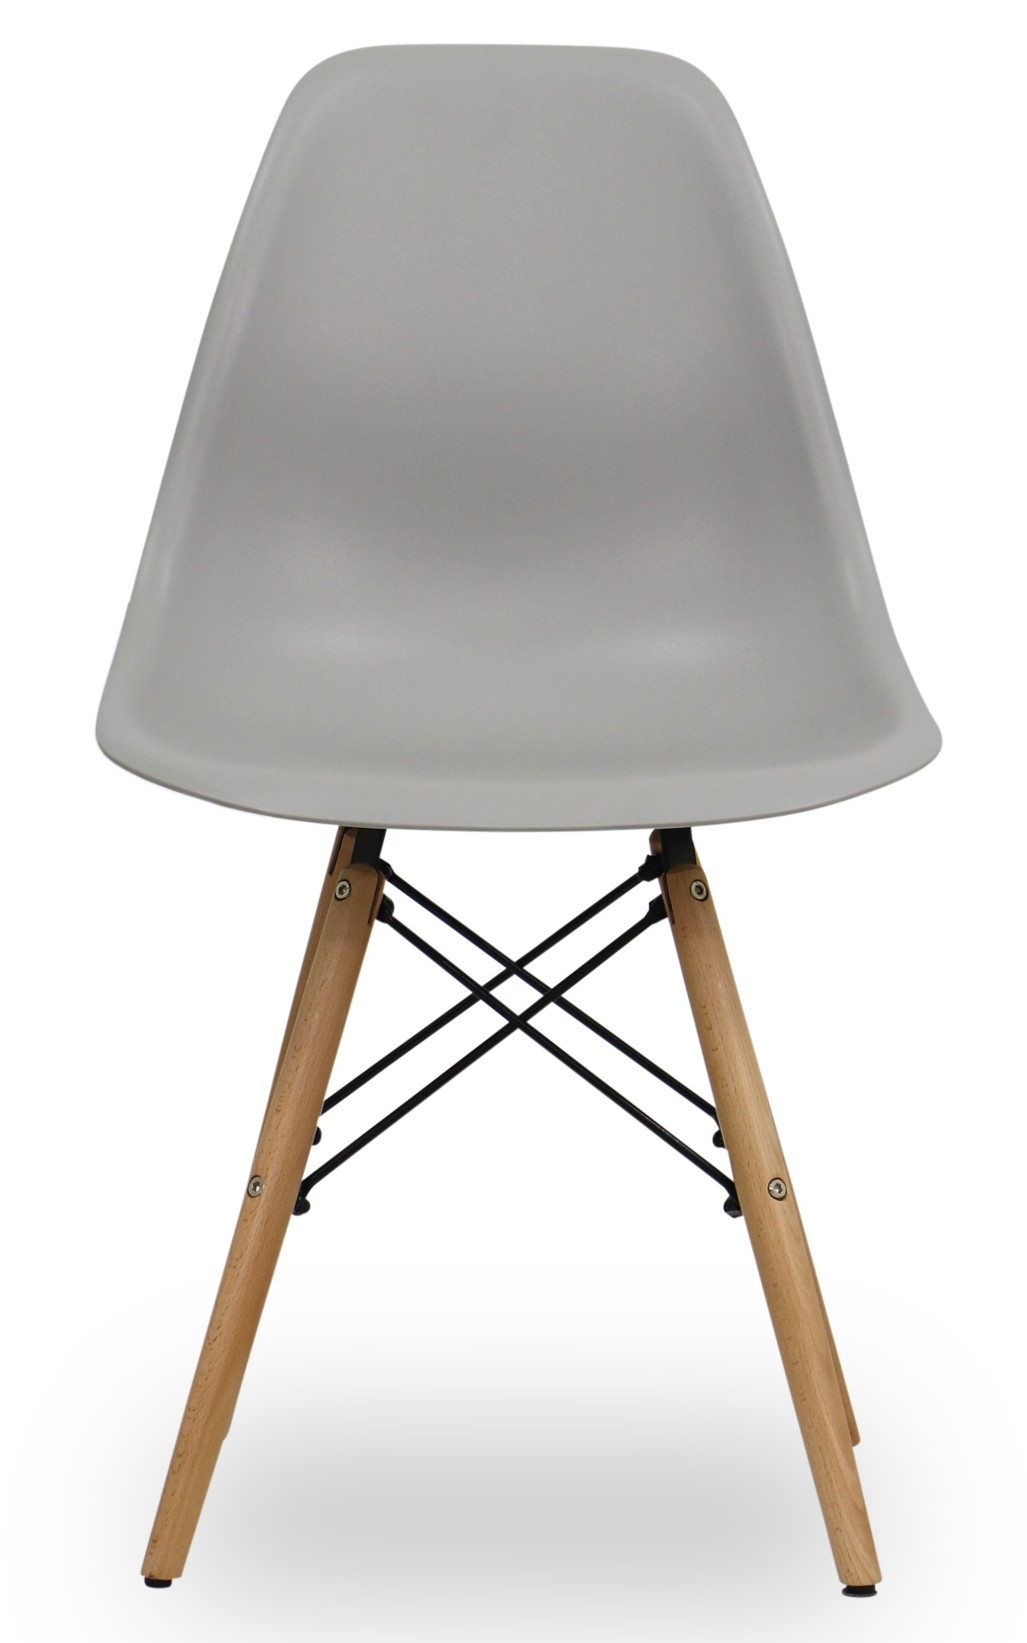 eames light grey replica designer chair dining room furniture furniture home d cor fortytwo. Black Bedroom Furniture Sets. Home Design Ideas